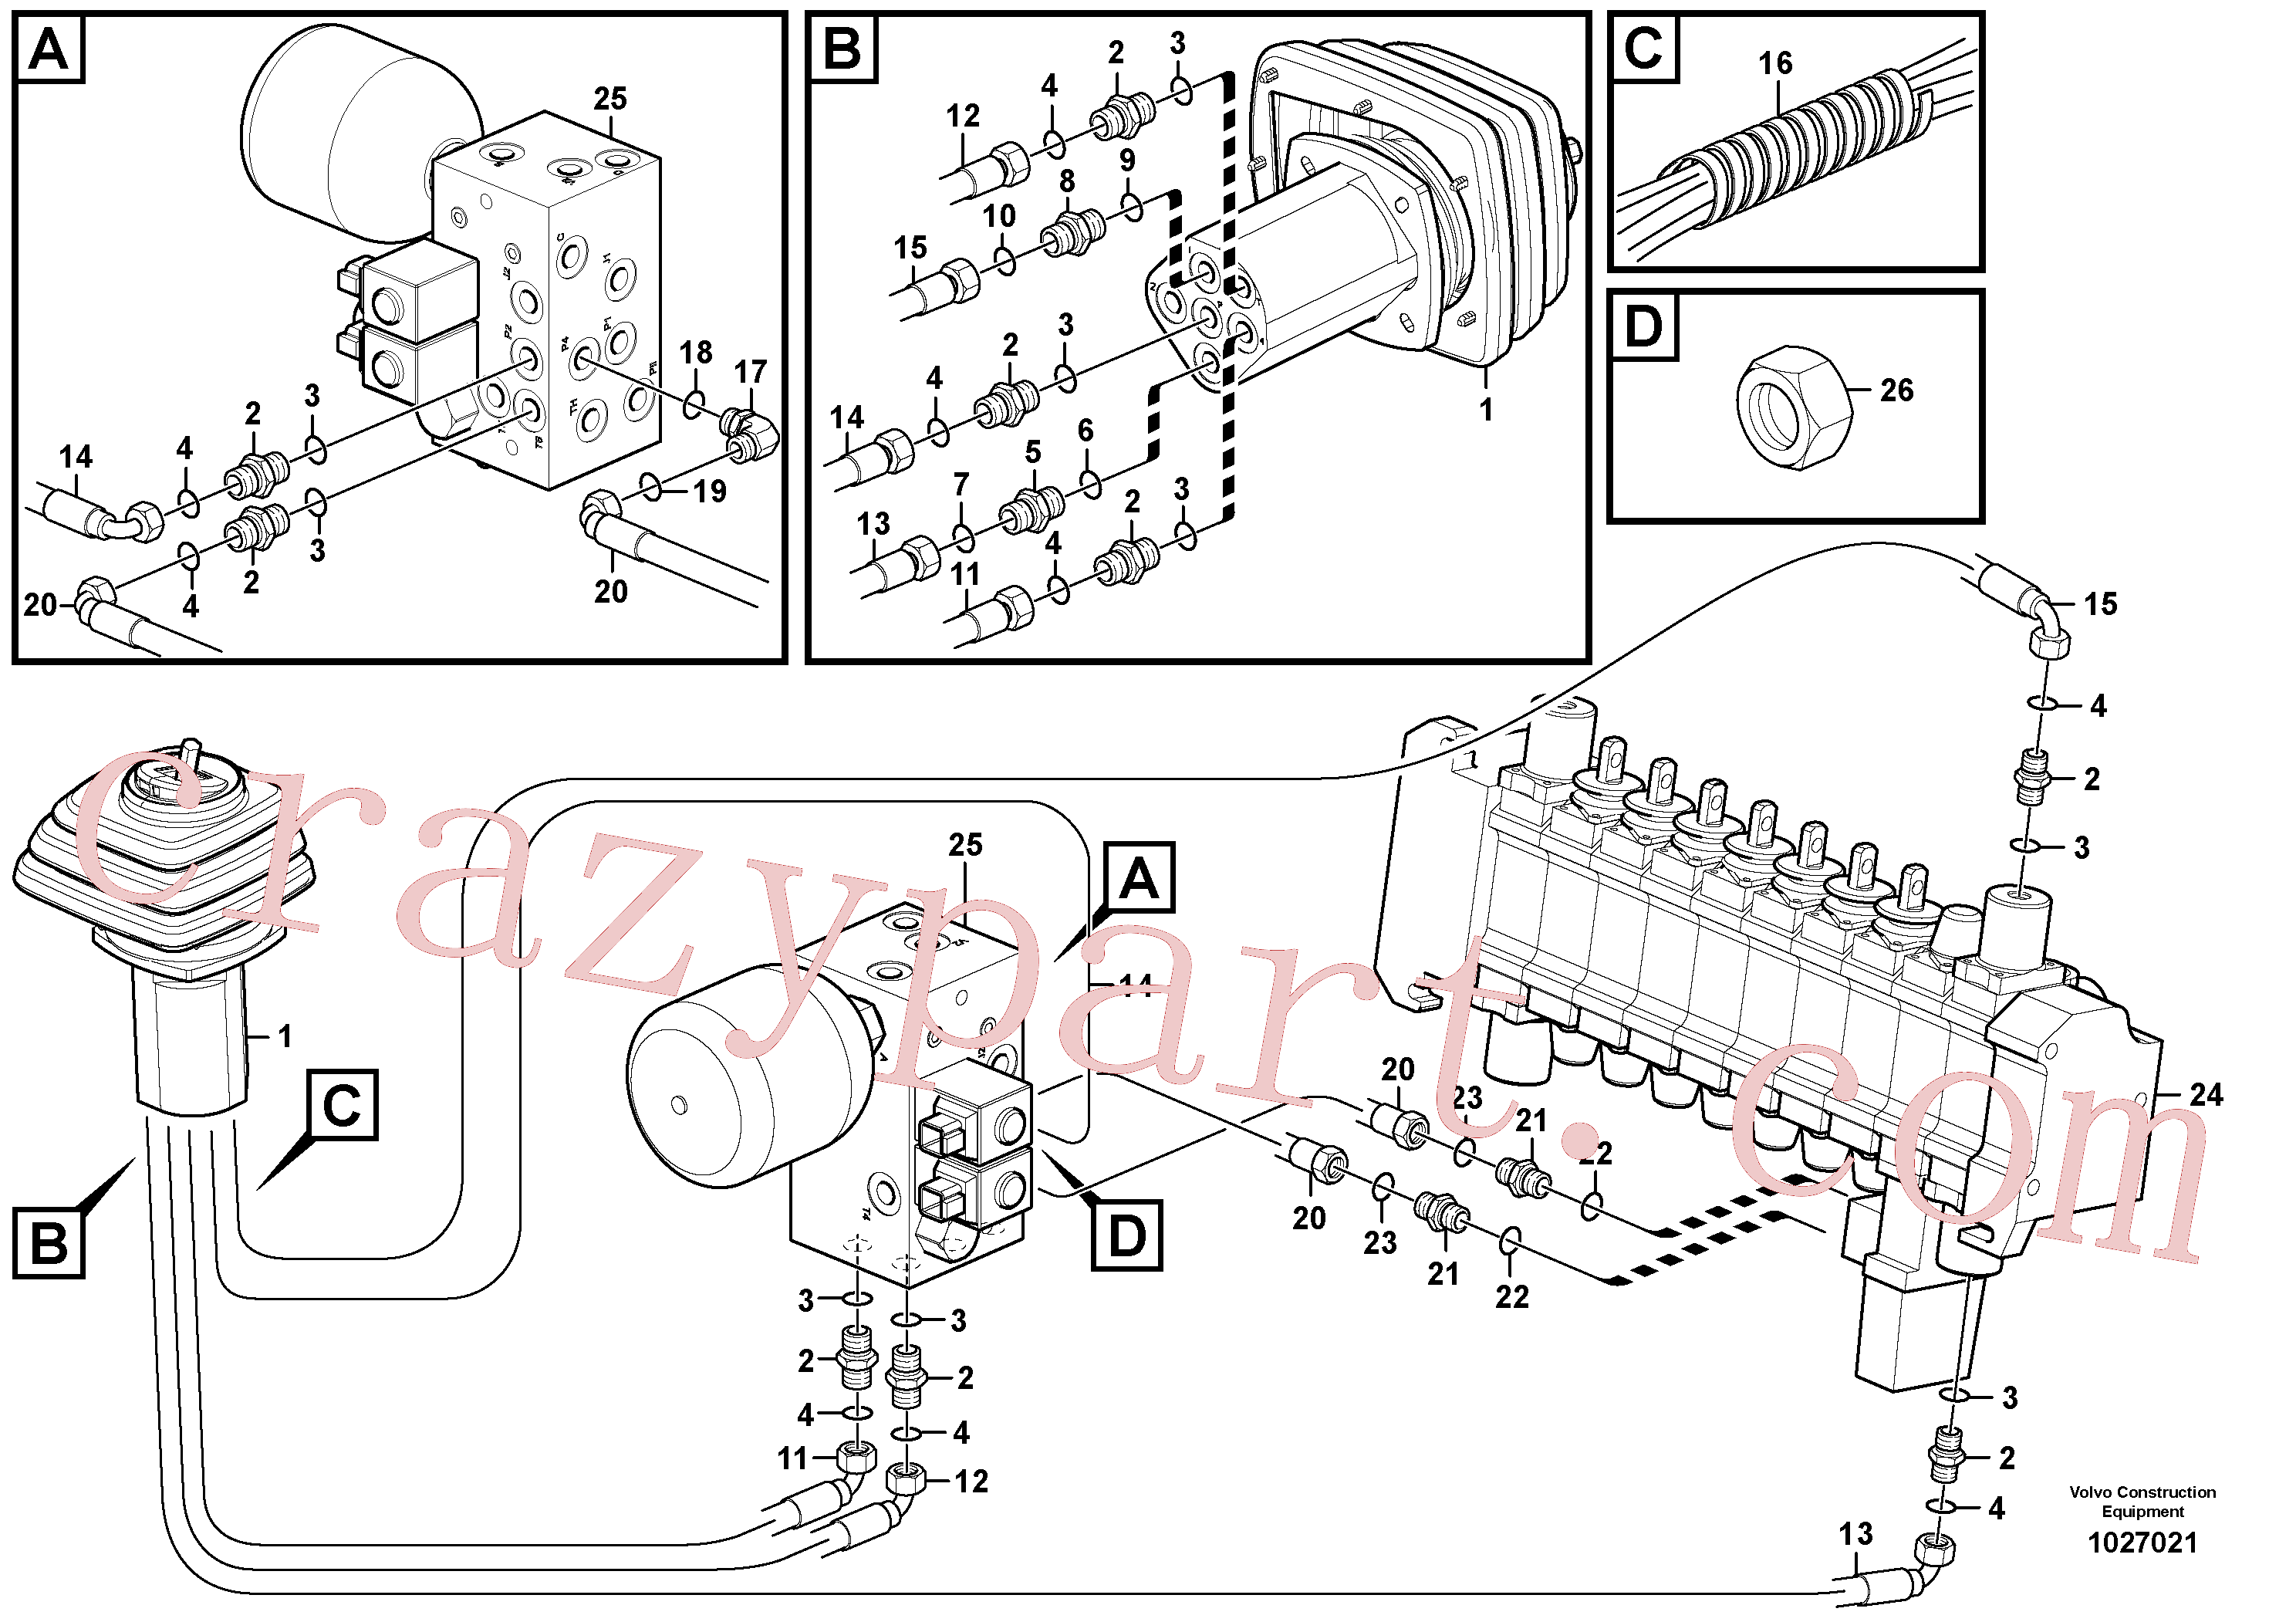 PJ5600200 for Volvo SE- Loader controls with safety accumulator(1027021 assembly)